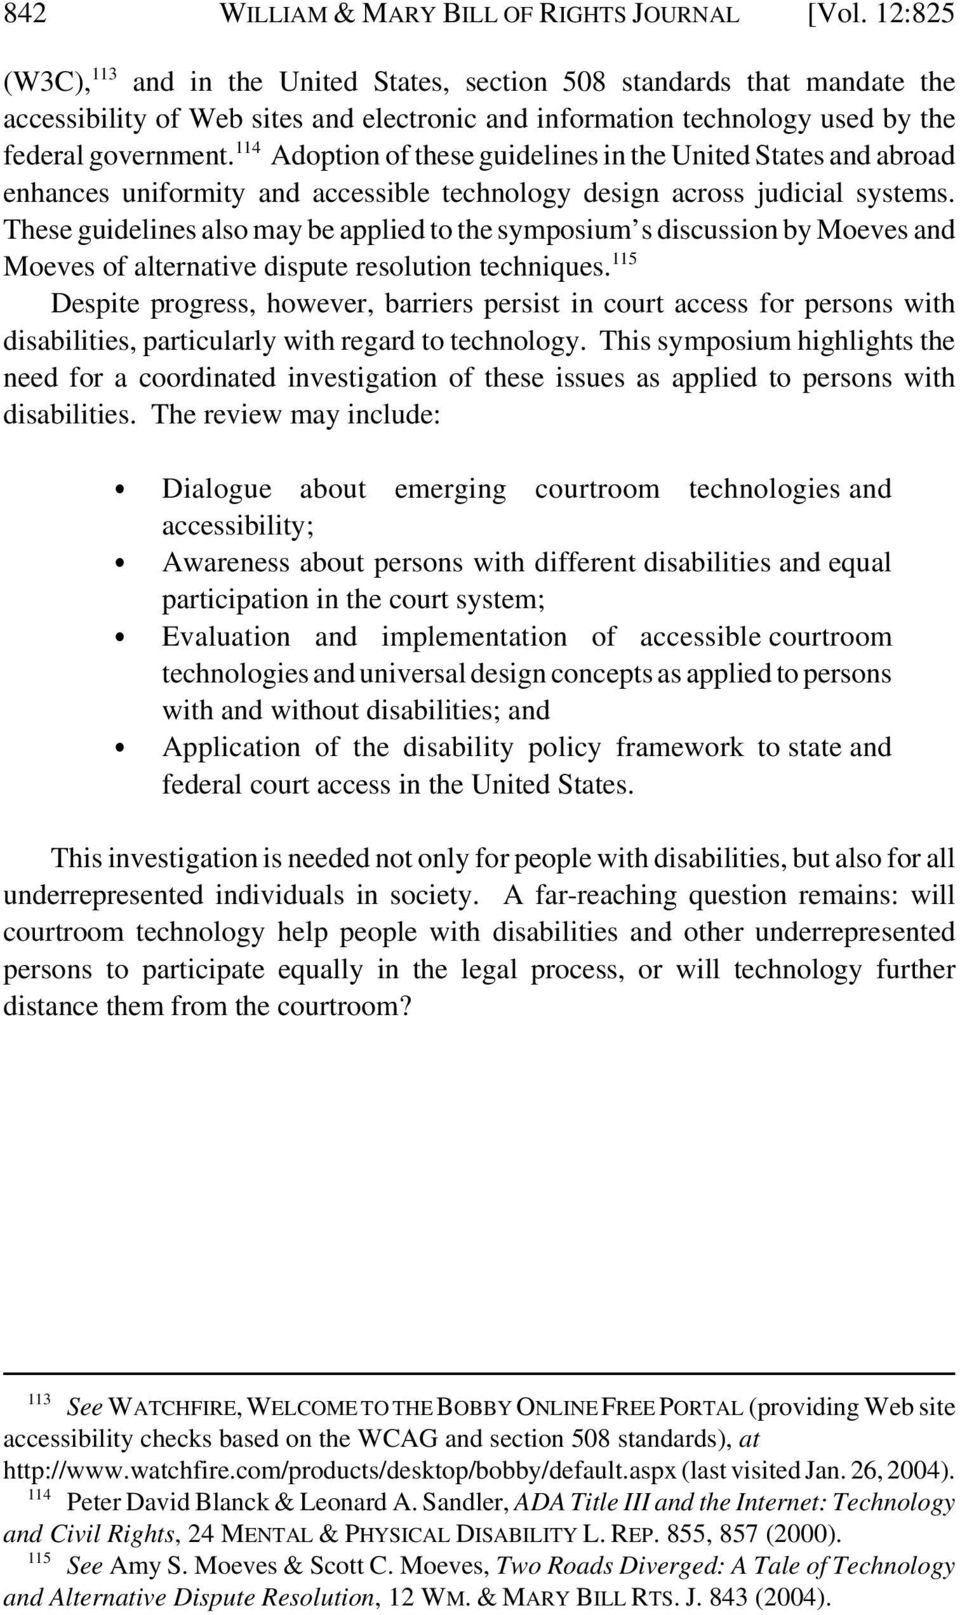 114 Adoption of these guidelines in the United States and abroad enhances uniformity and accessible technology design across judicial systems.